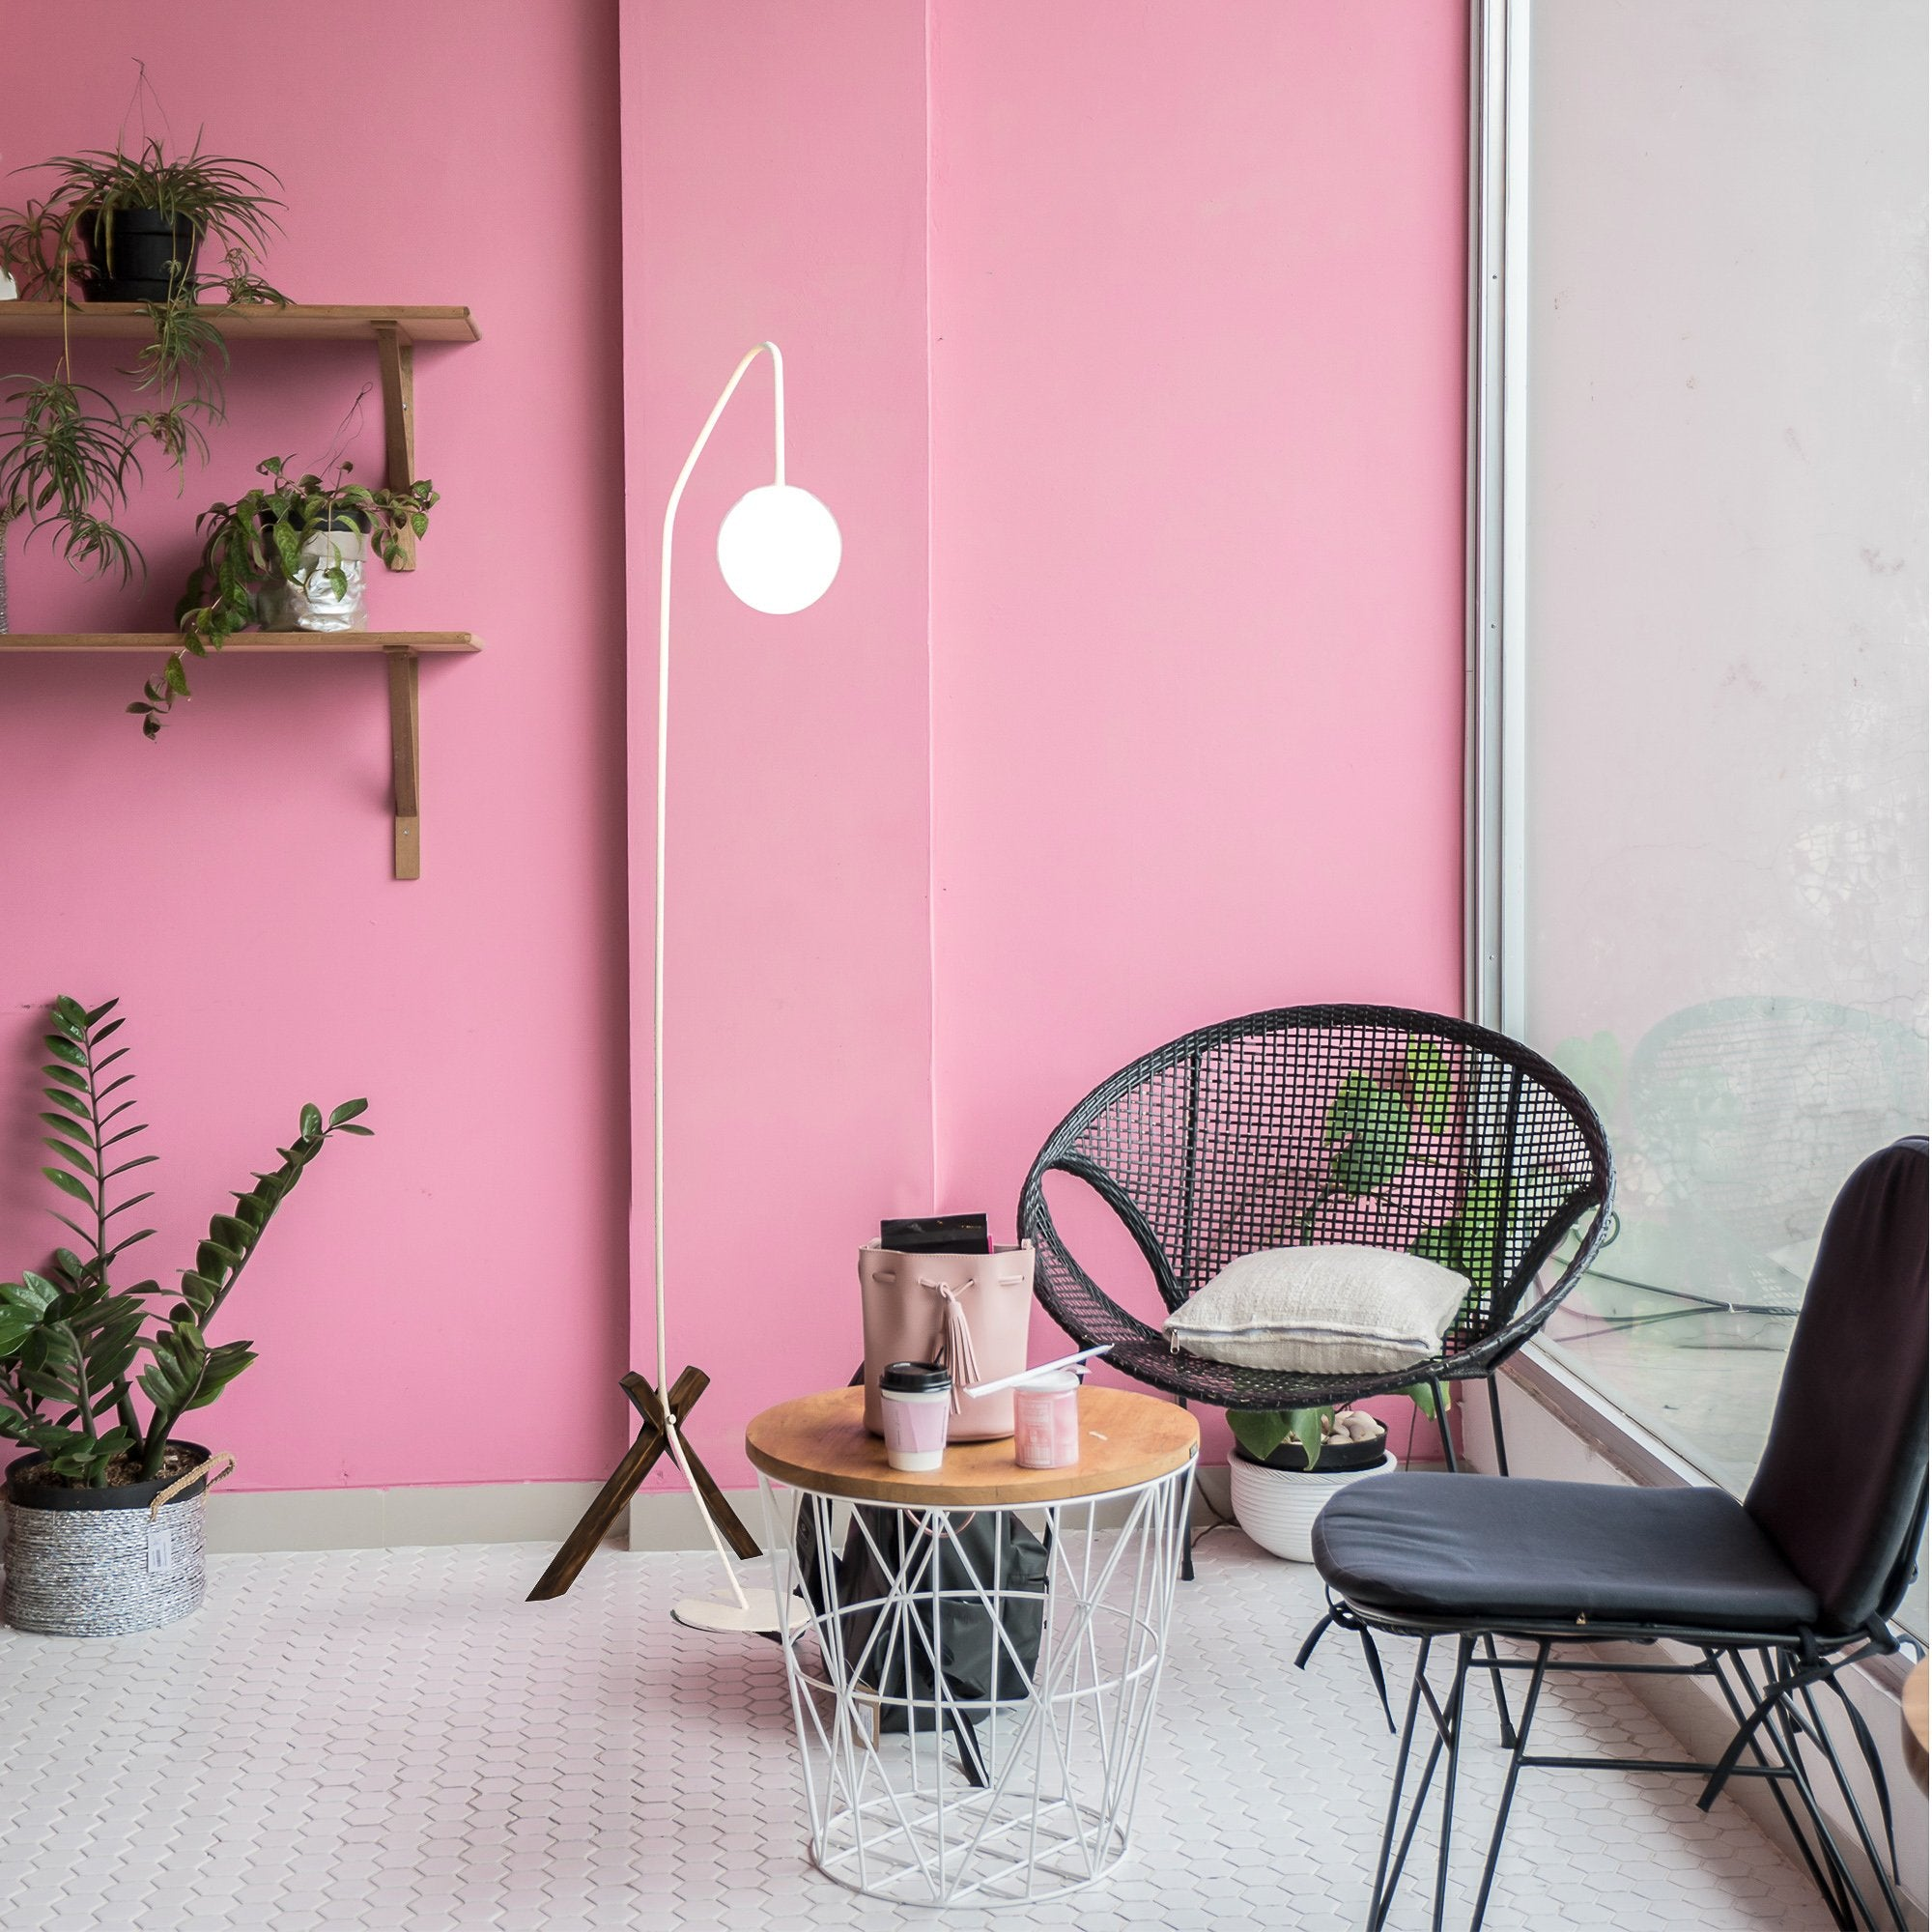 white floor lamp black metal chair wooden base glass frosted ball pink wall interior design